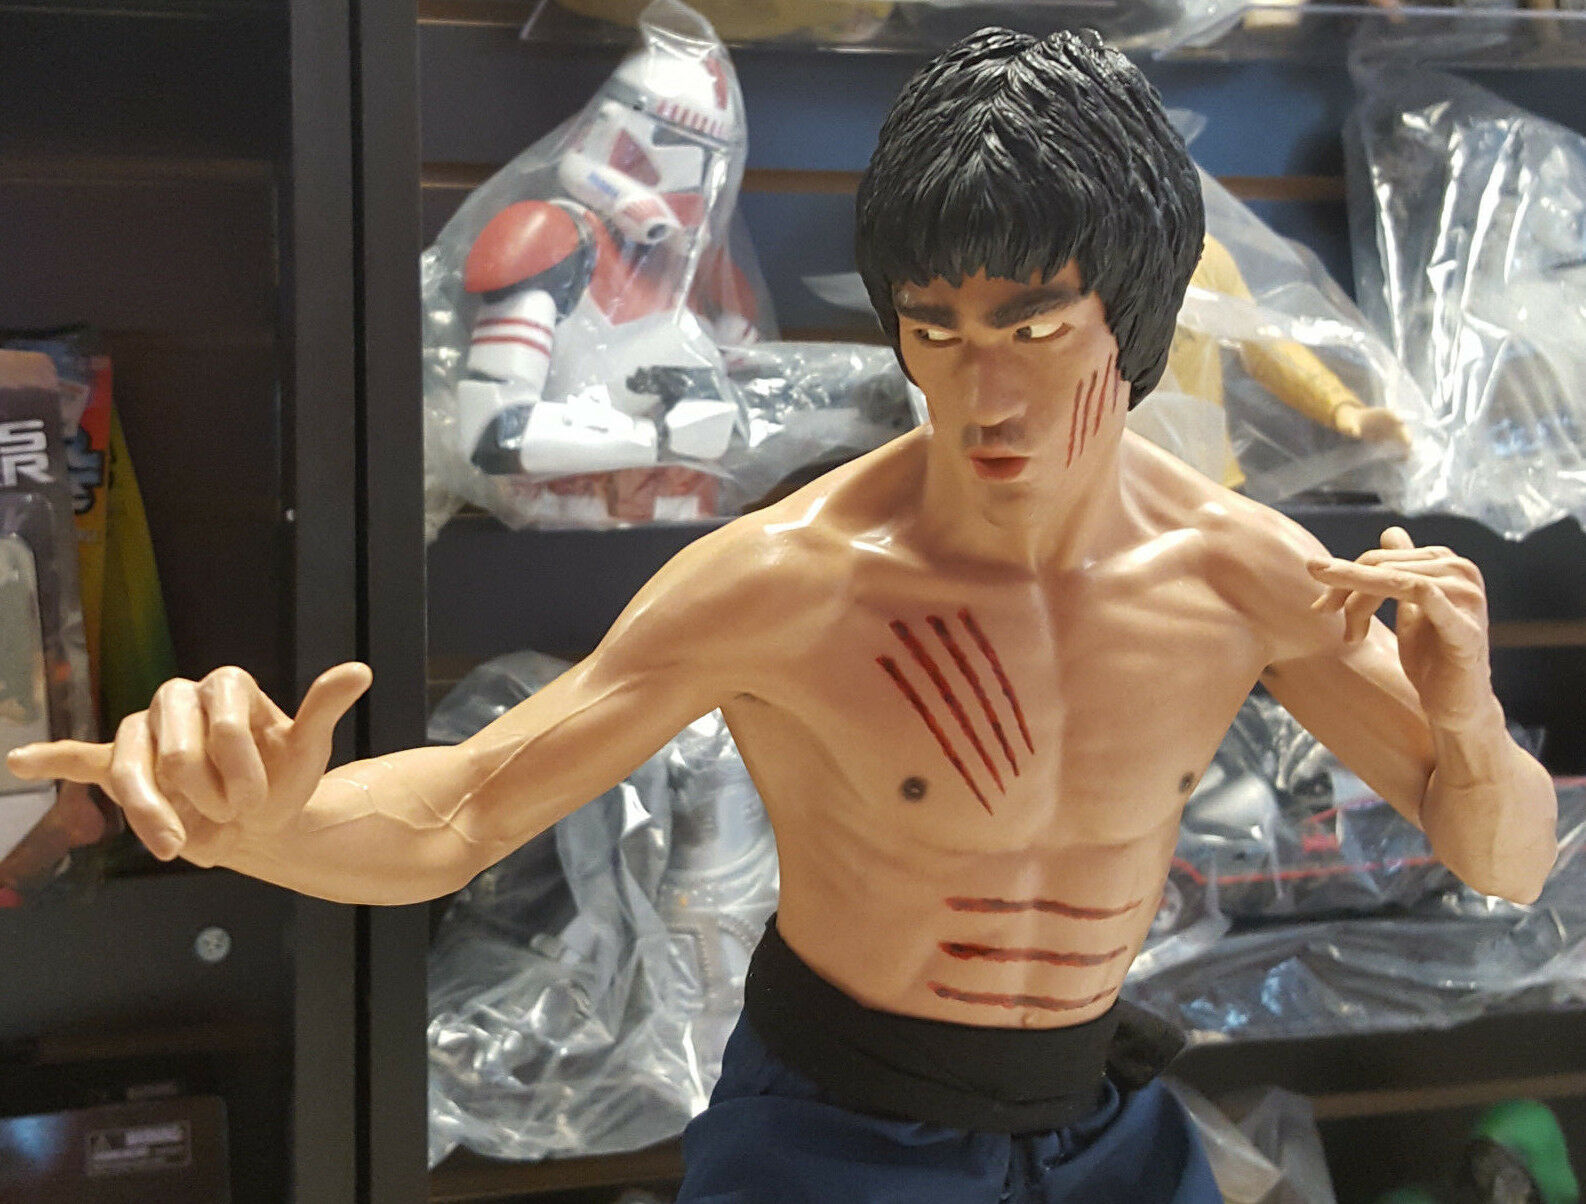 Bruce Lee 1/4 Scale Statue Limited 2500 pieces by by by EnterBay Used JC bb1c4c